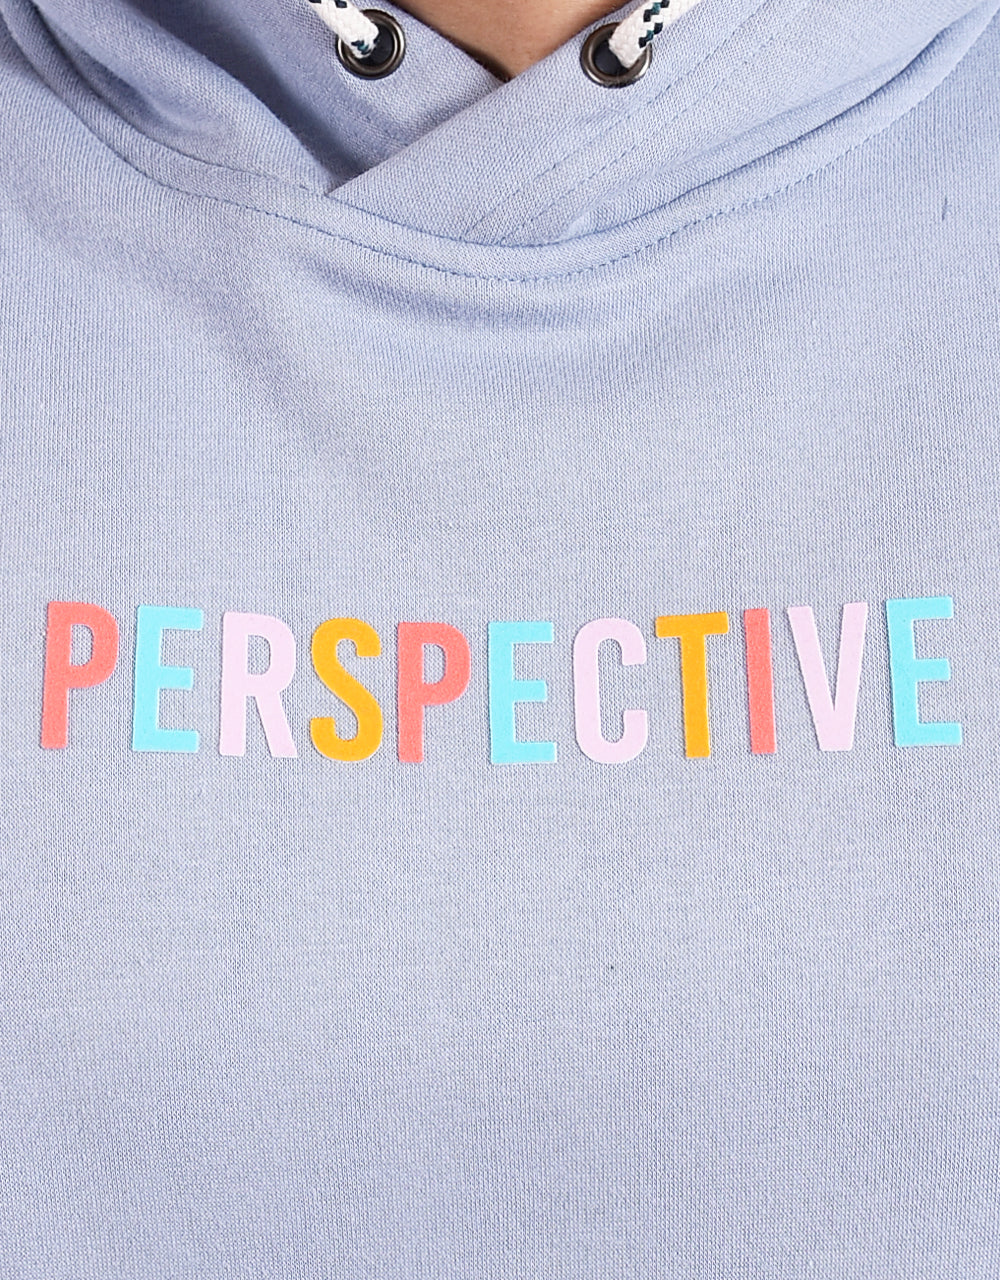 Perspect 3 Pullover Hoodie